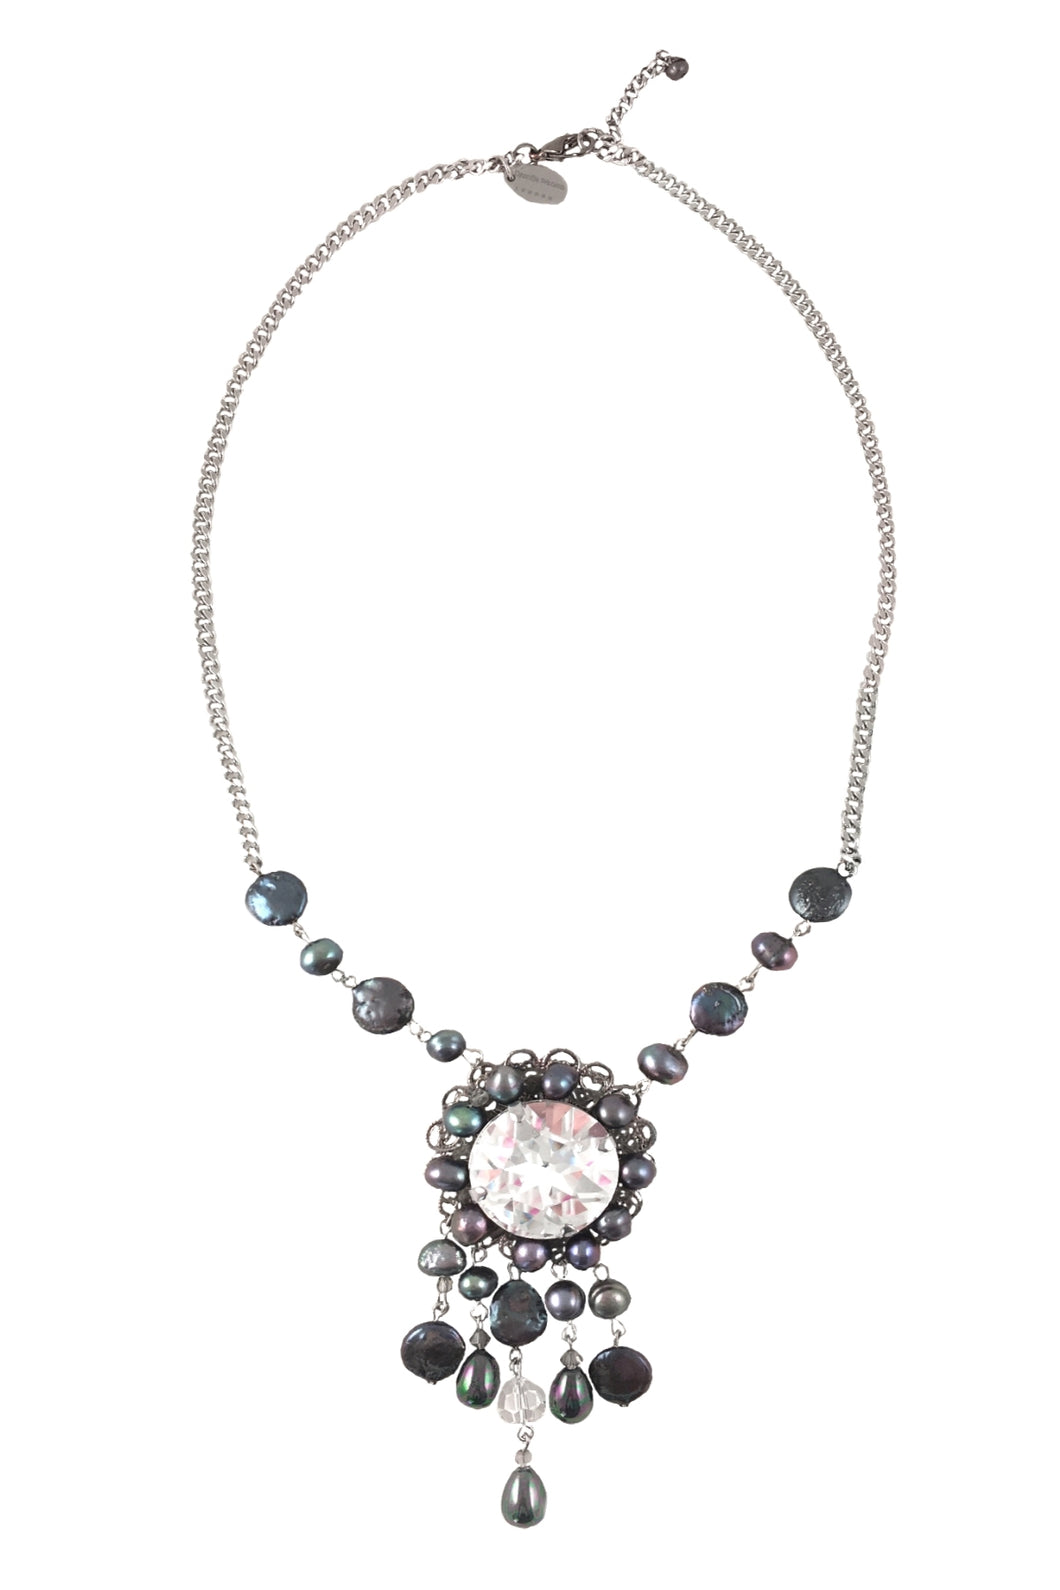 Bali Pearls and Swarovski Crystals Necklace